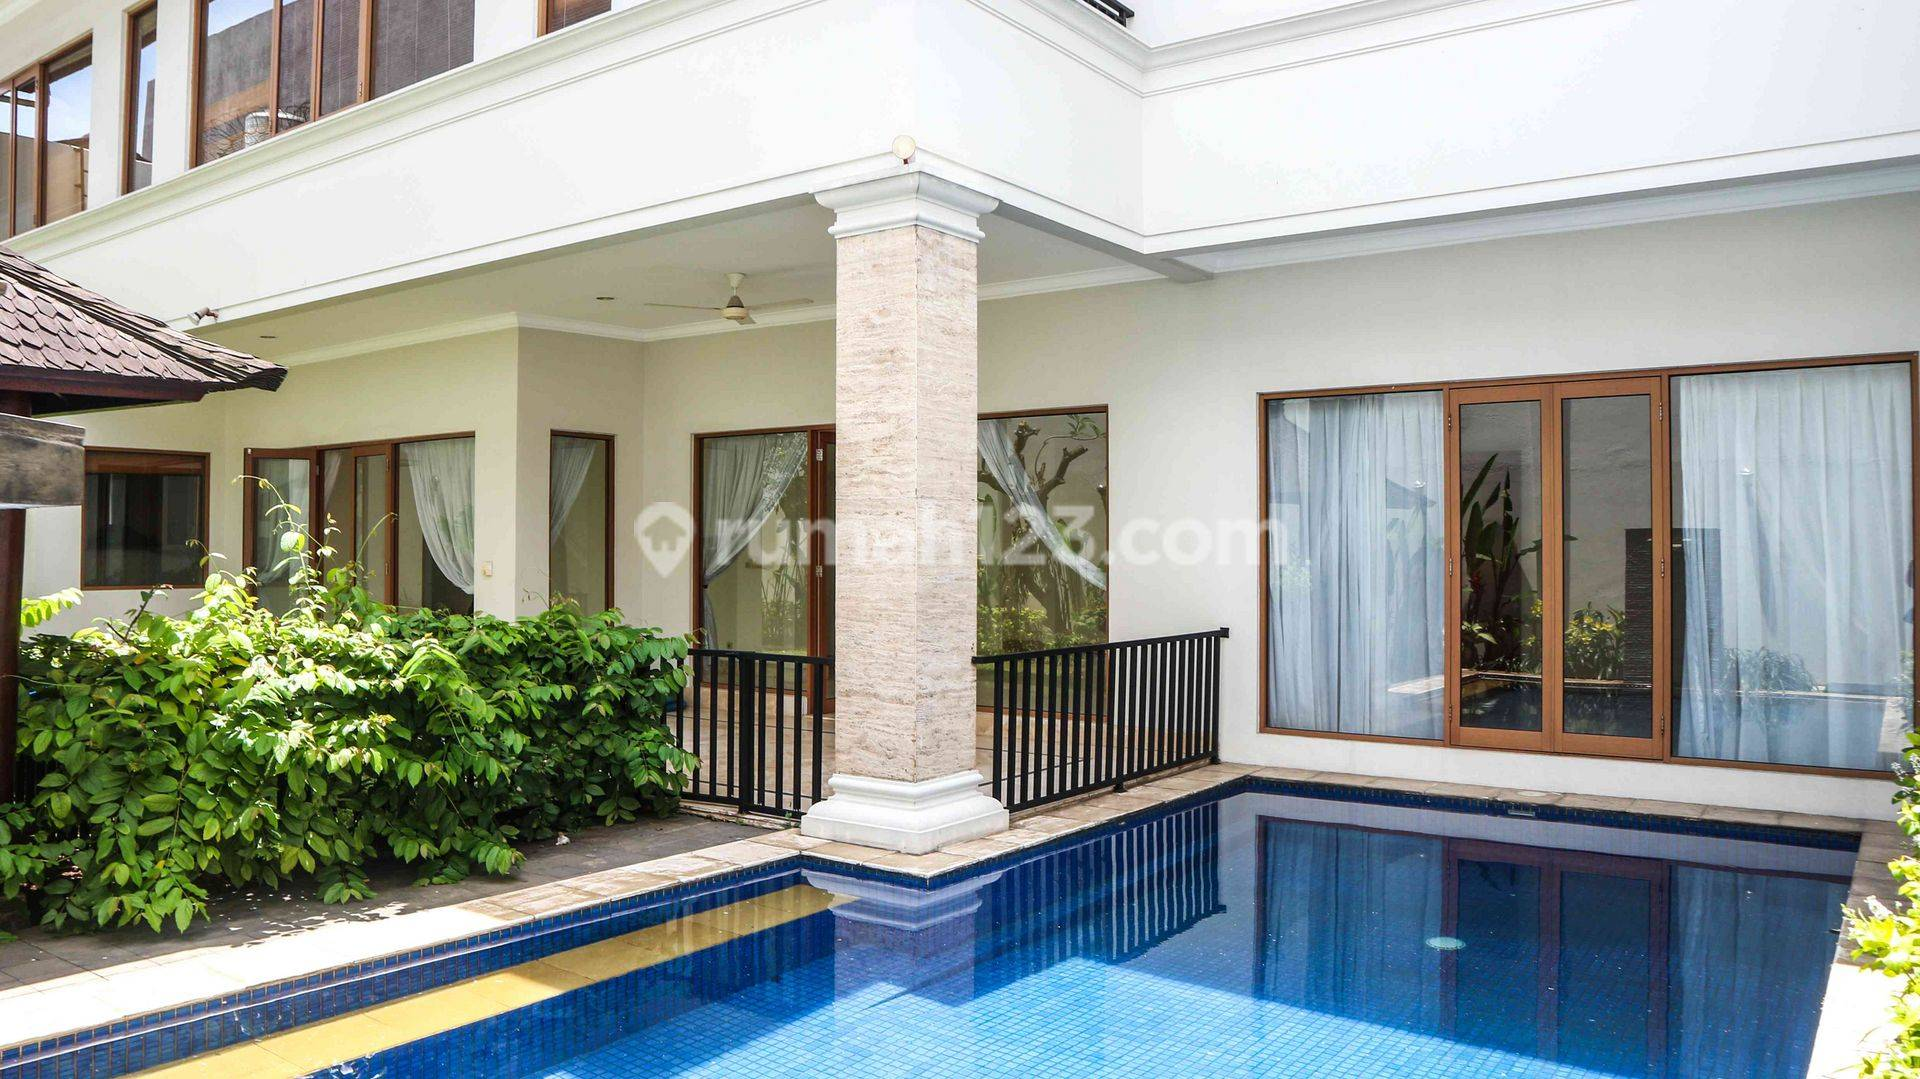 Modern Stand-alone house in Pondok Indah, 650 sqm with 5 BR and Private pool, Ready to move in!